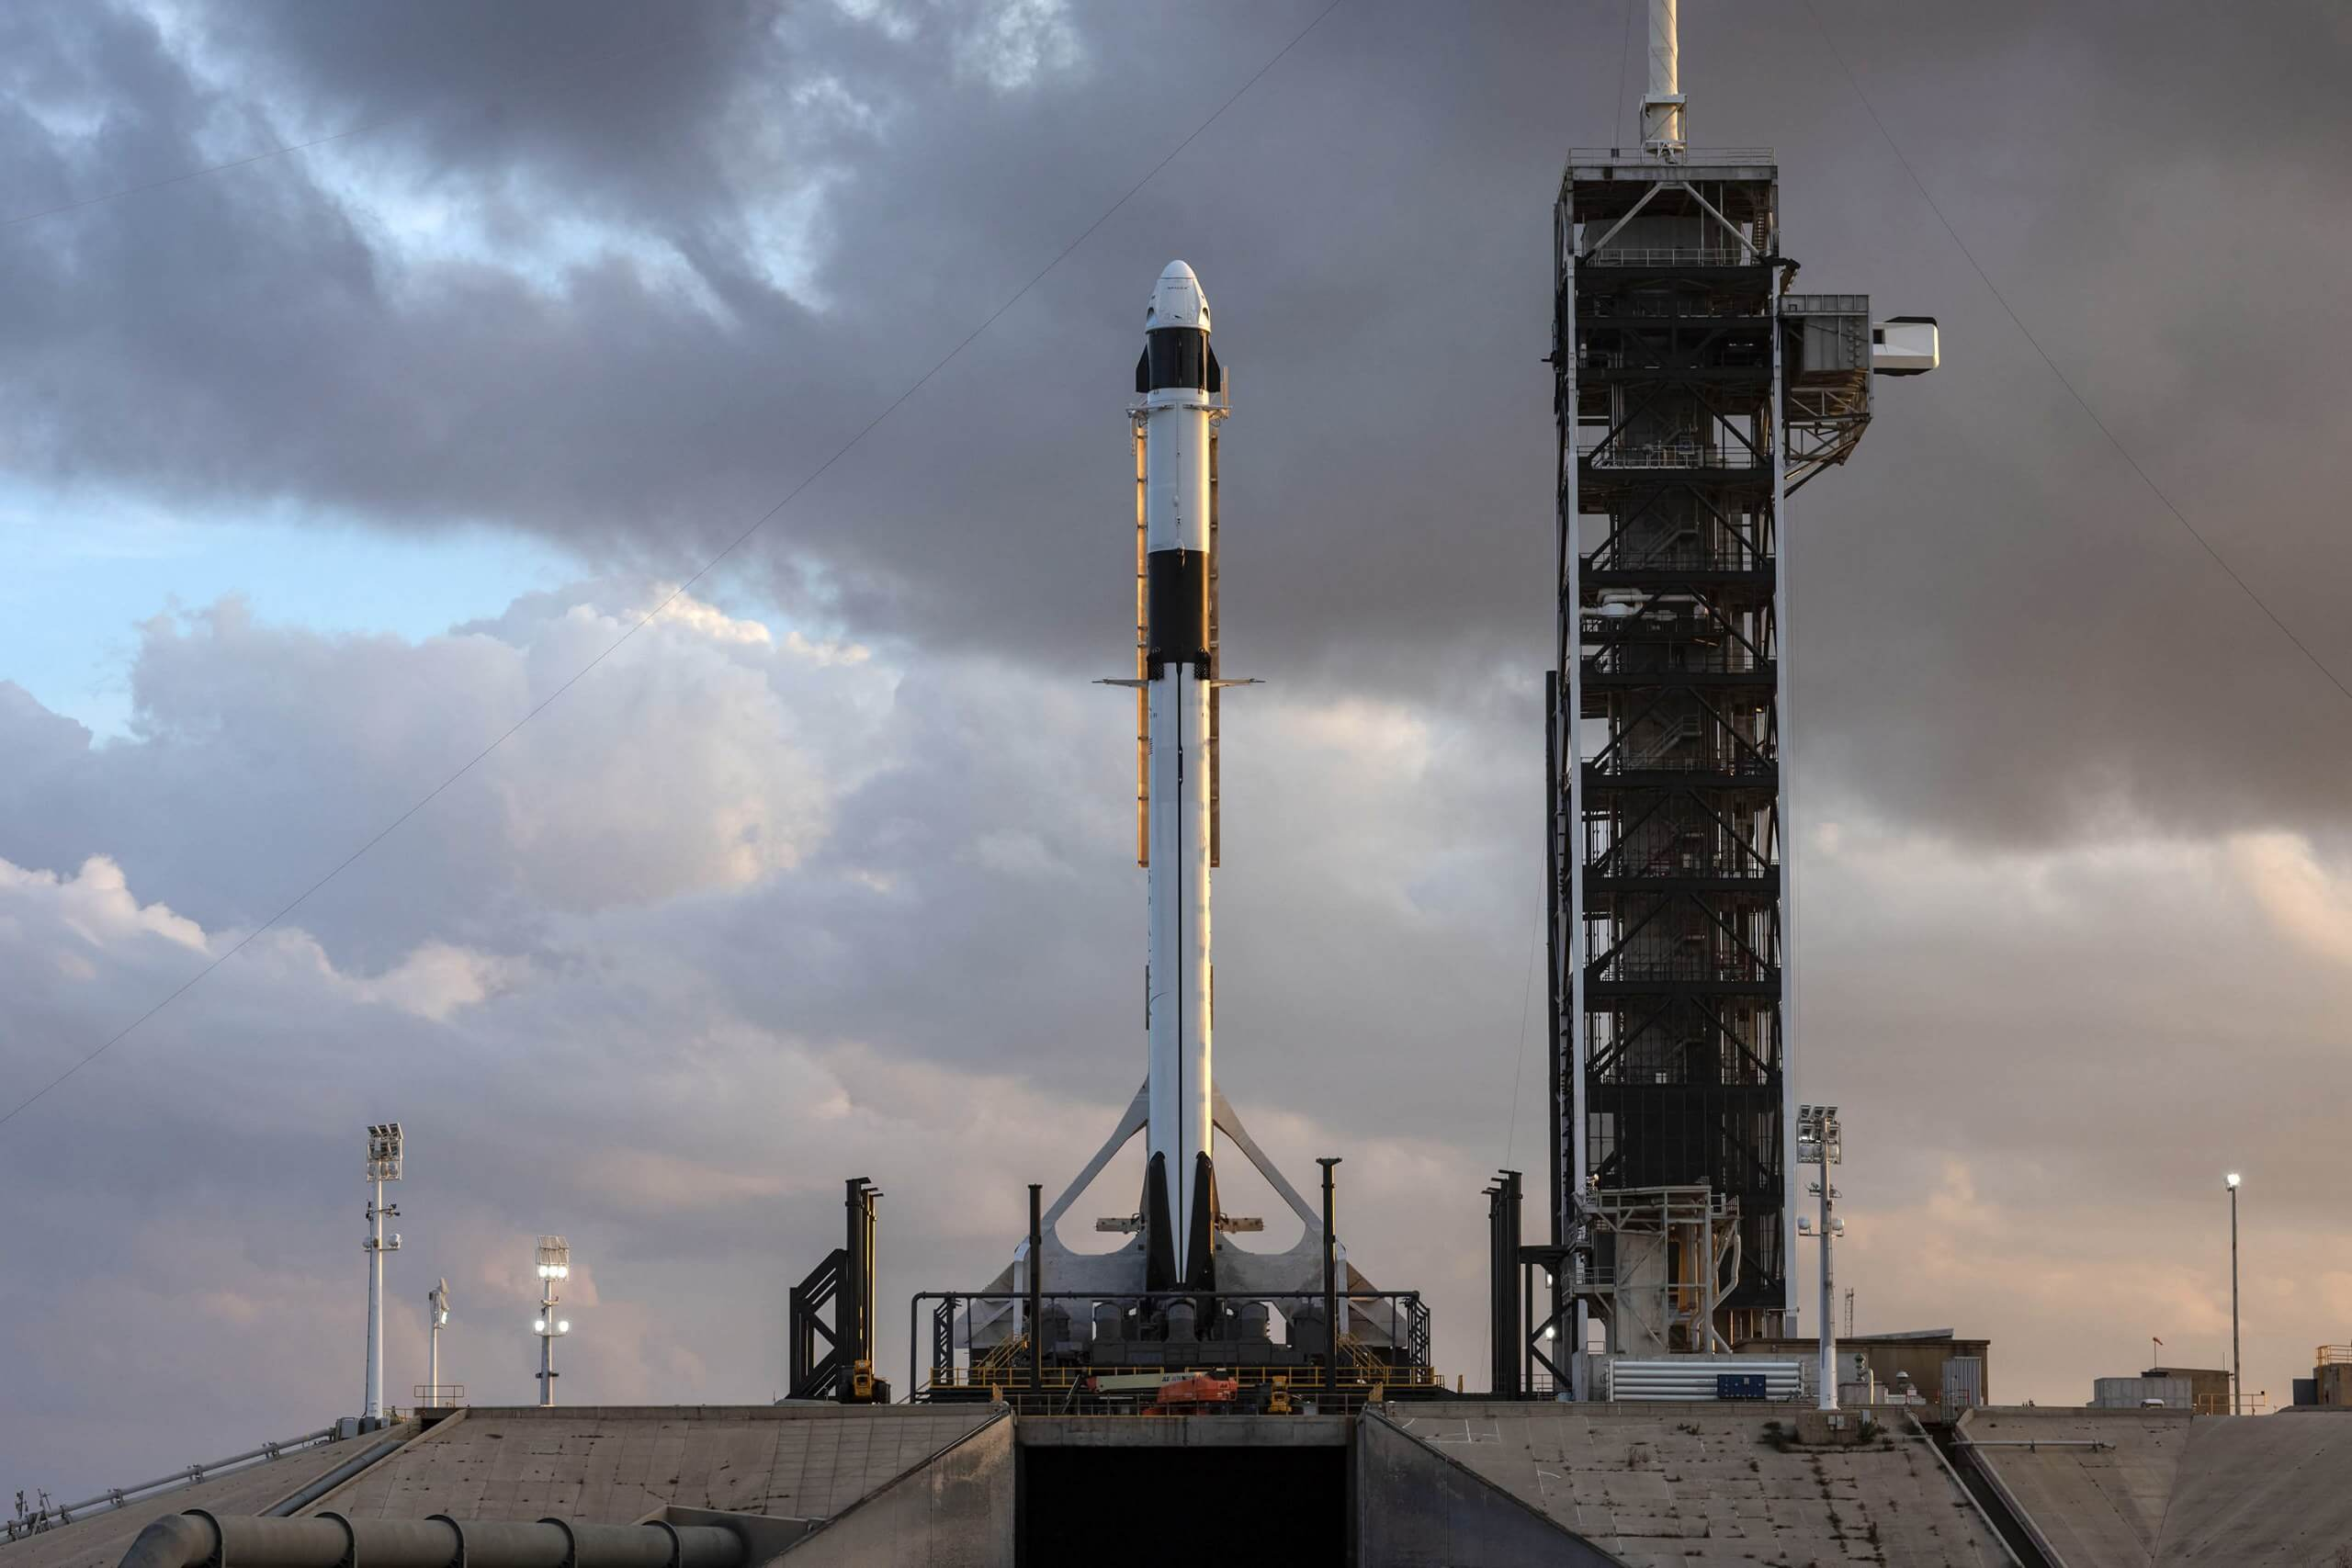 Elon Musk's SpaceX launch vehicles certification to be reviewed